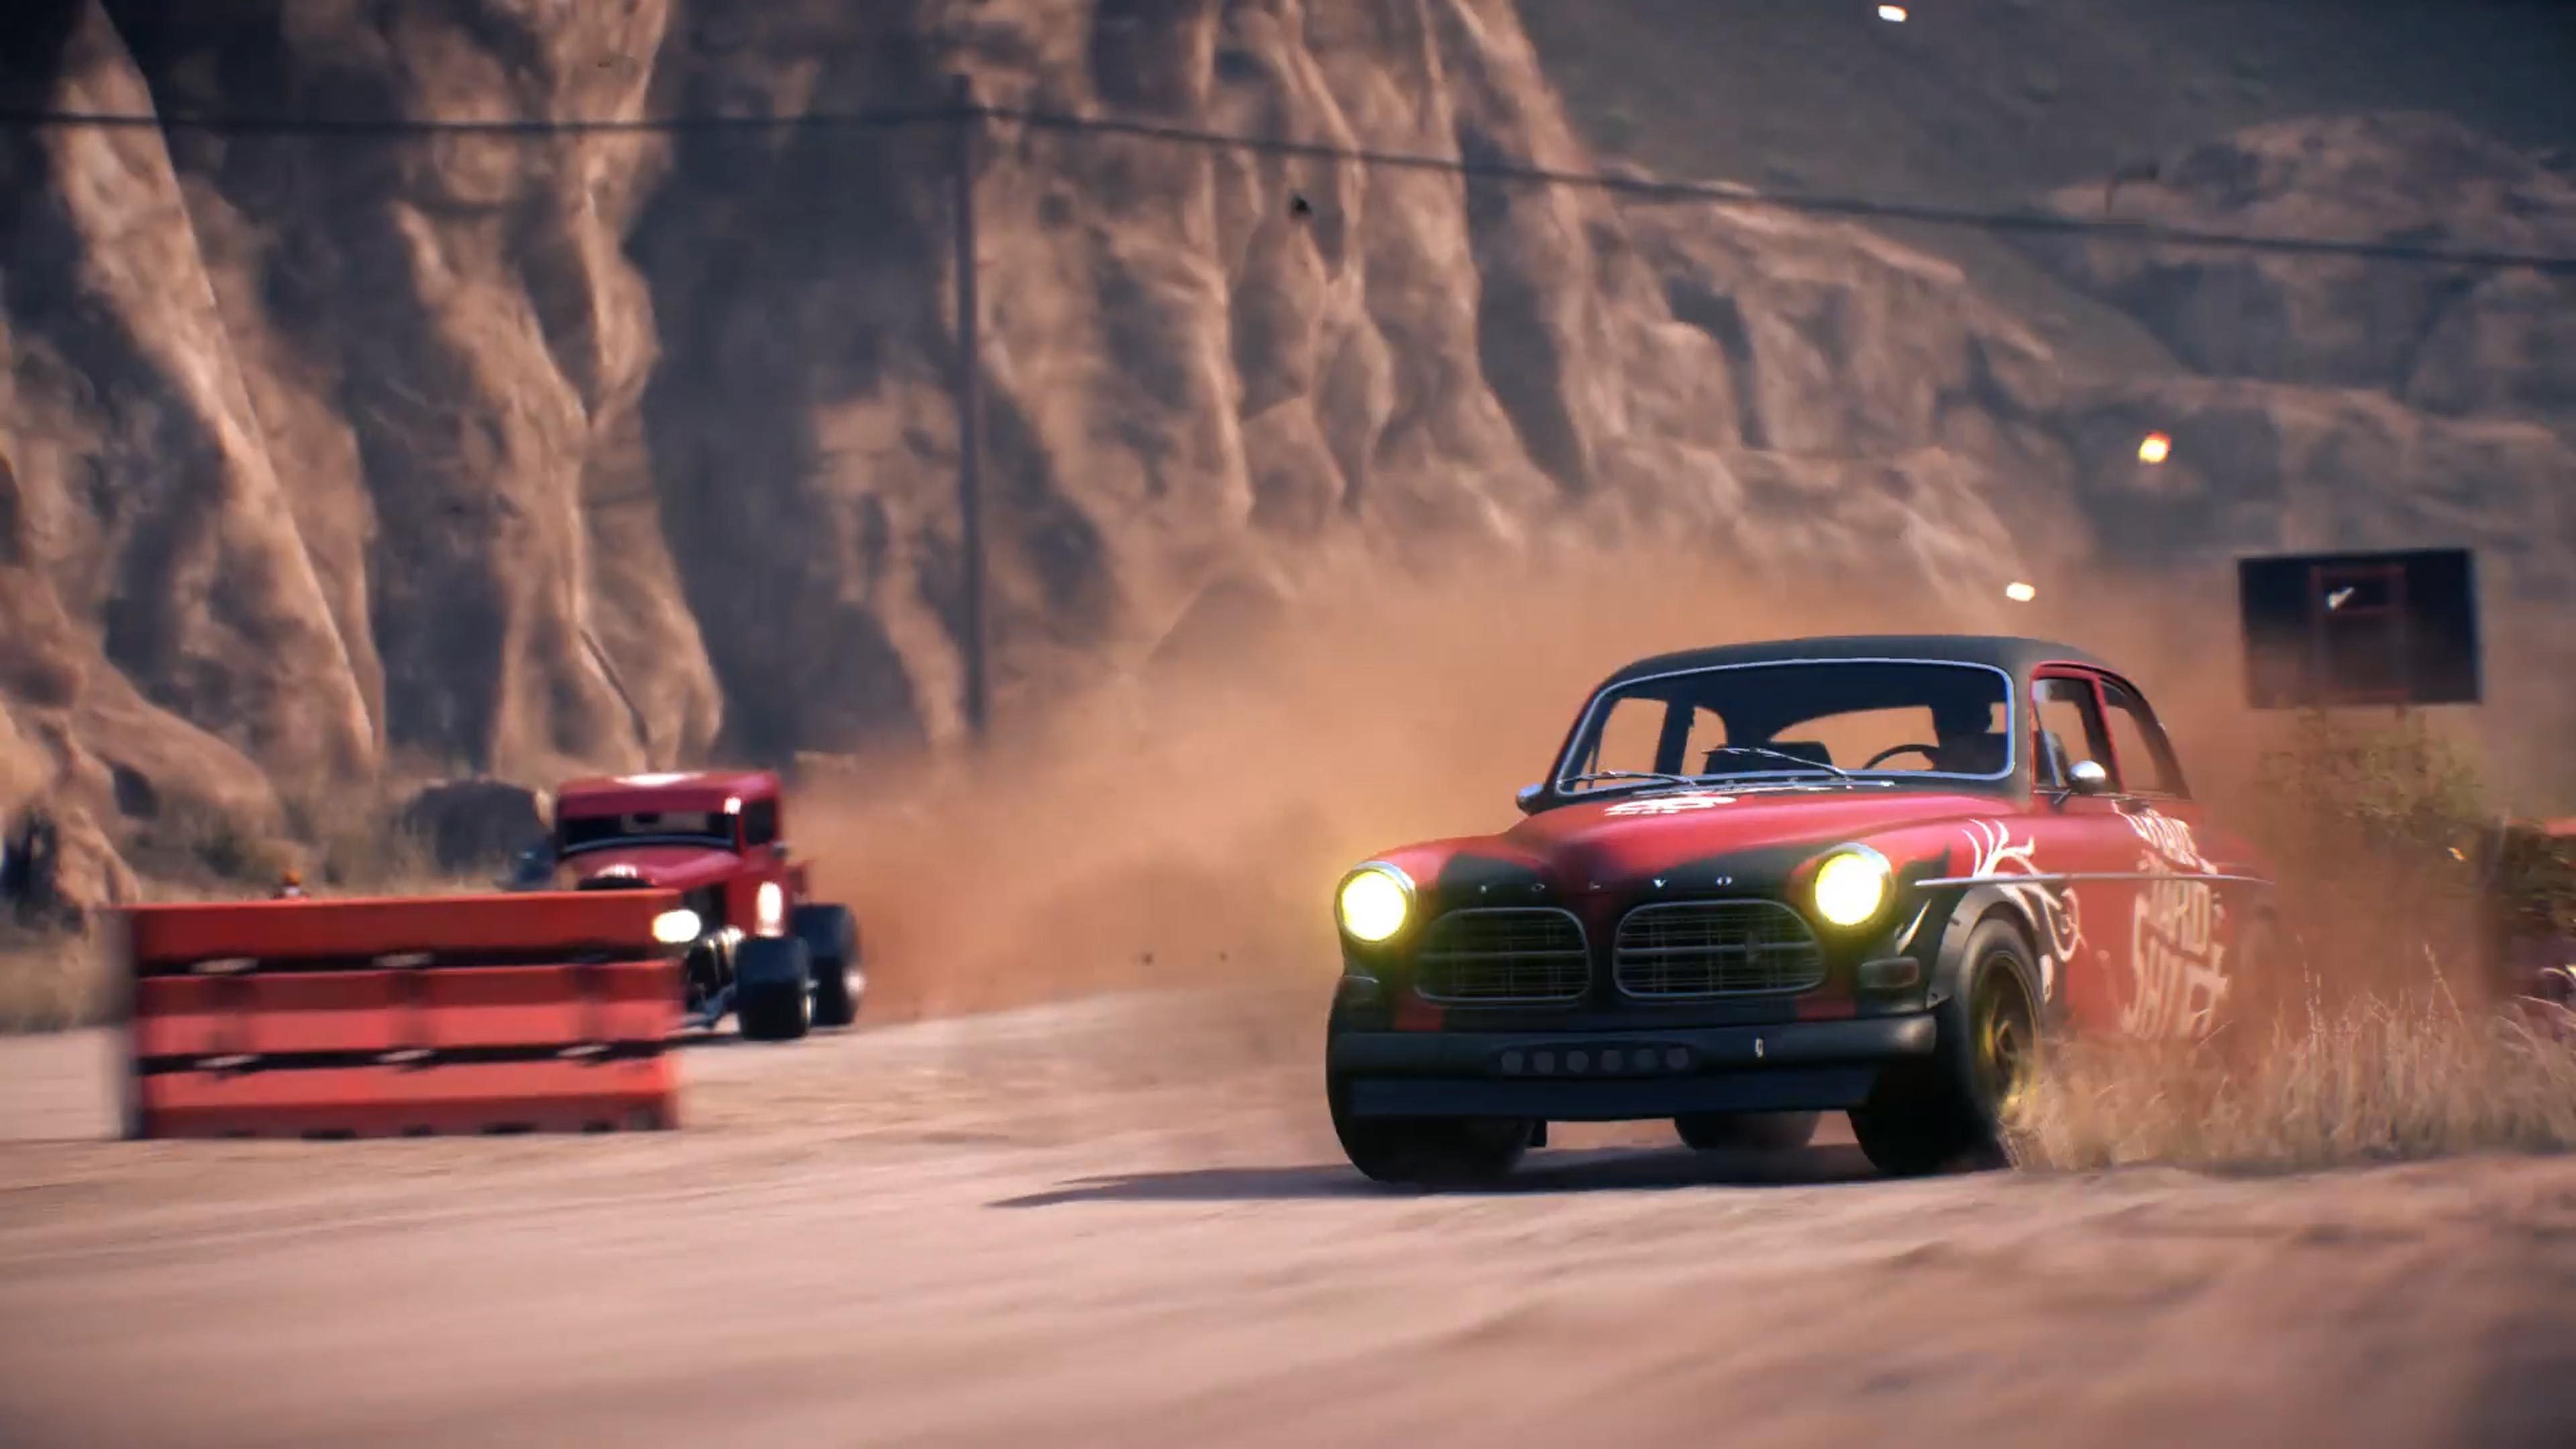 Need for Speed Payback - Car Racing Action Game - Official